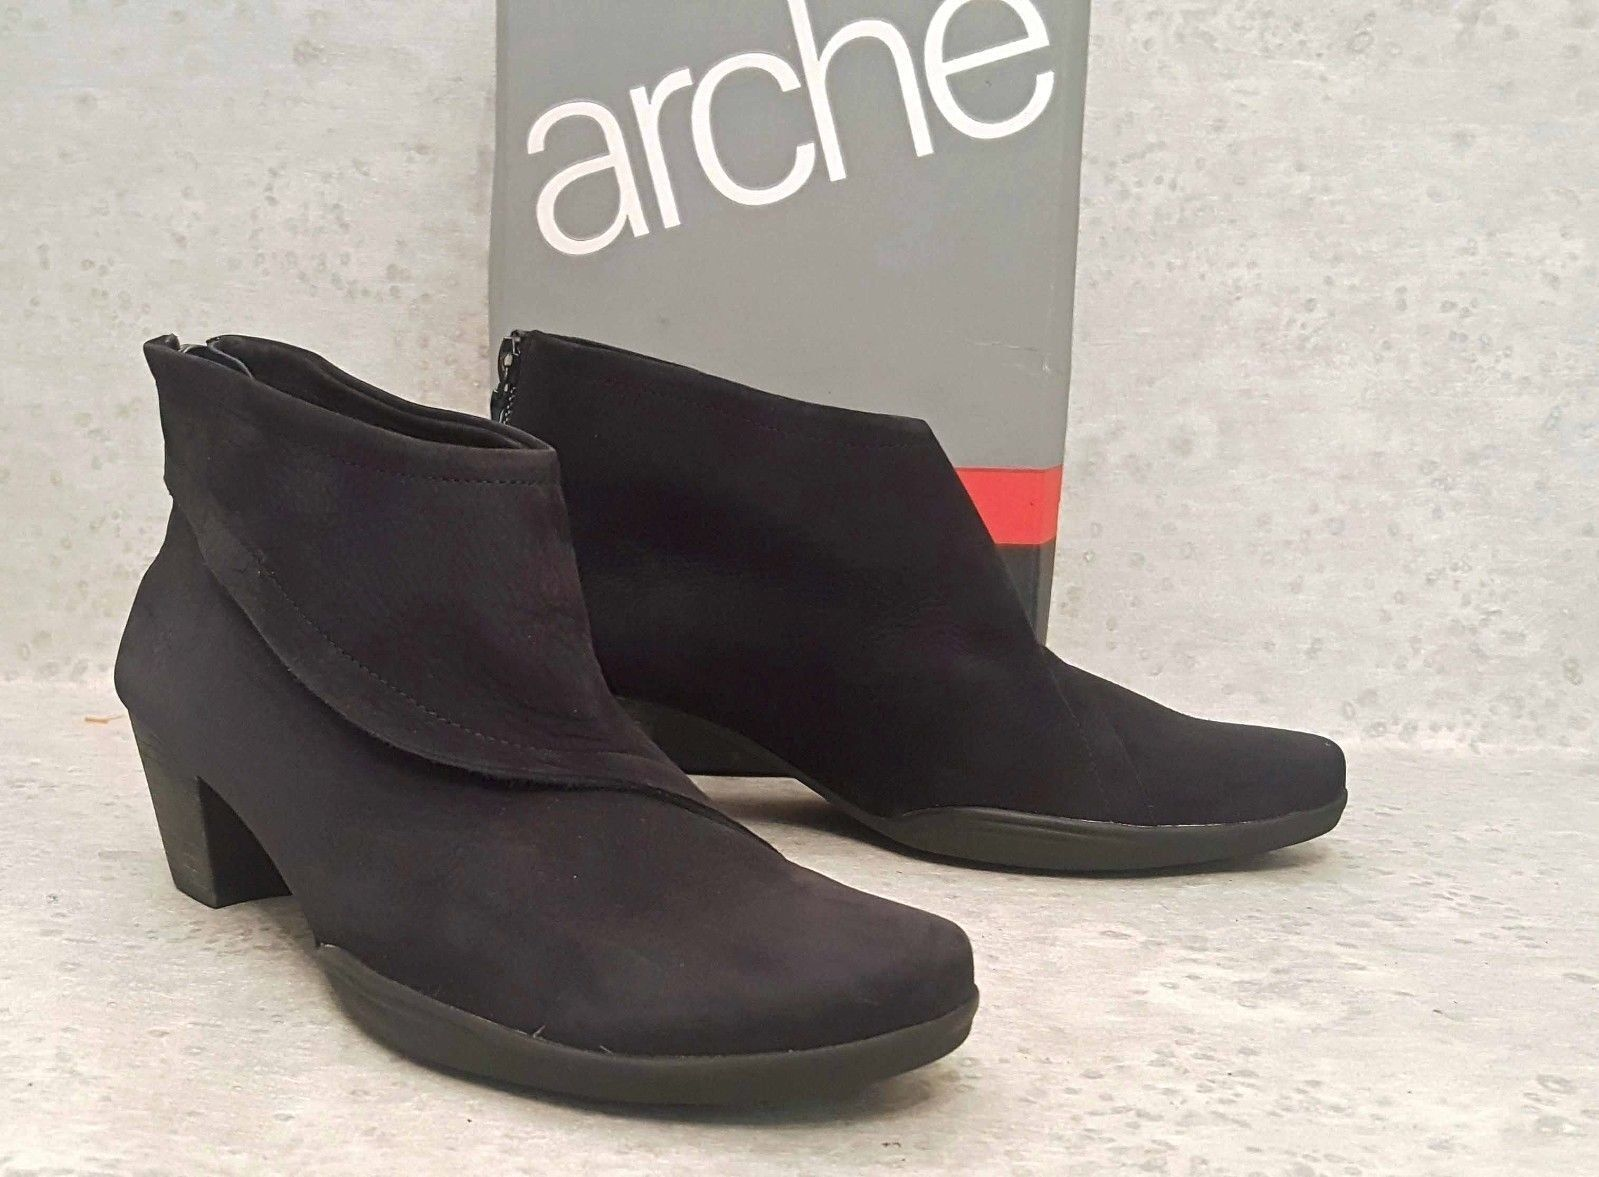 Arche ankle boots black nubuck leather size 40 us 9 M